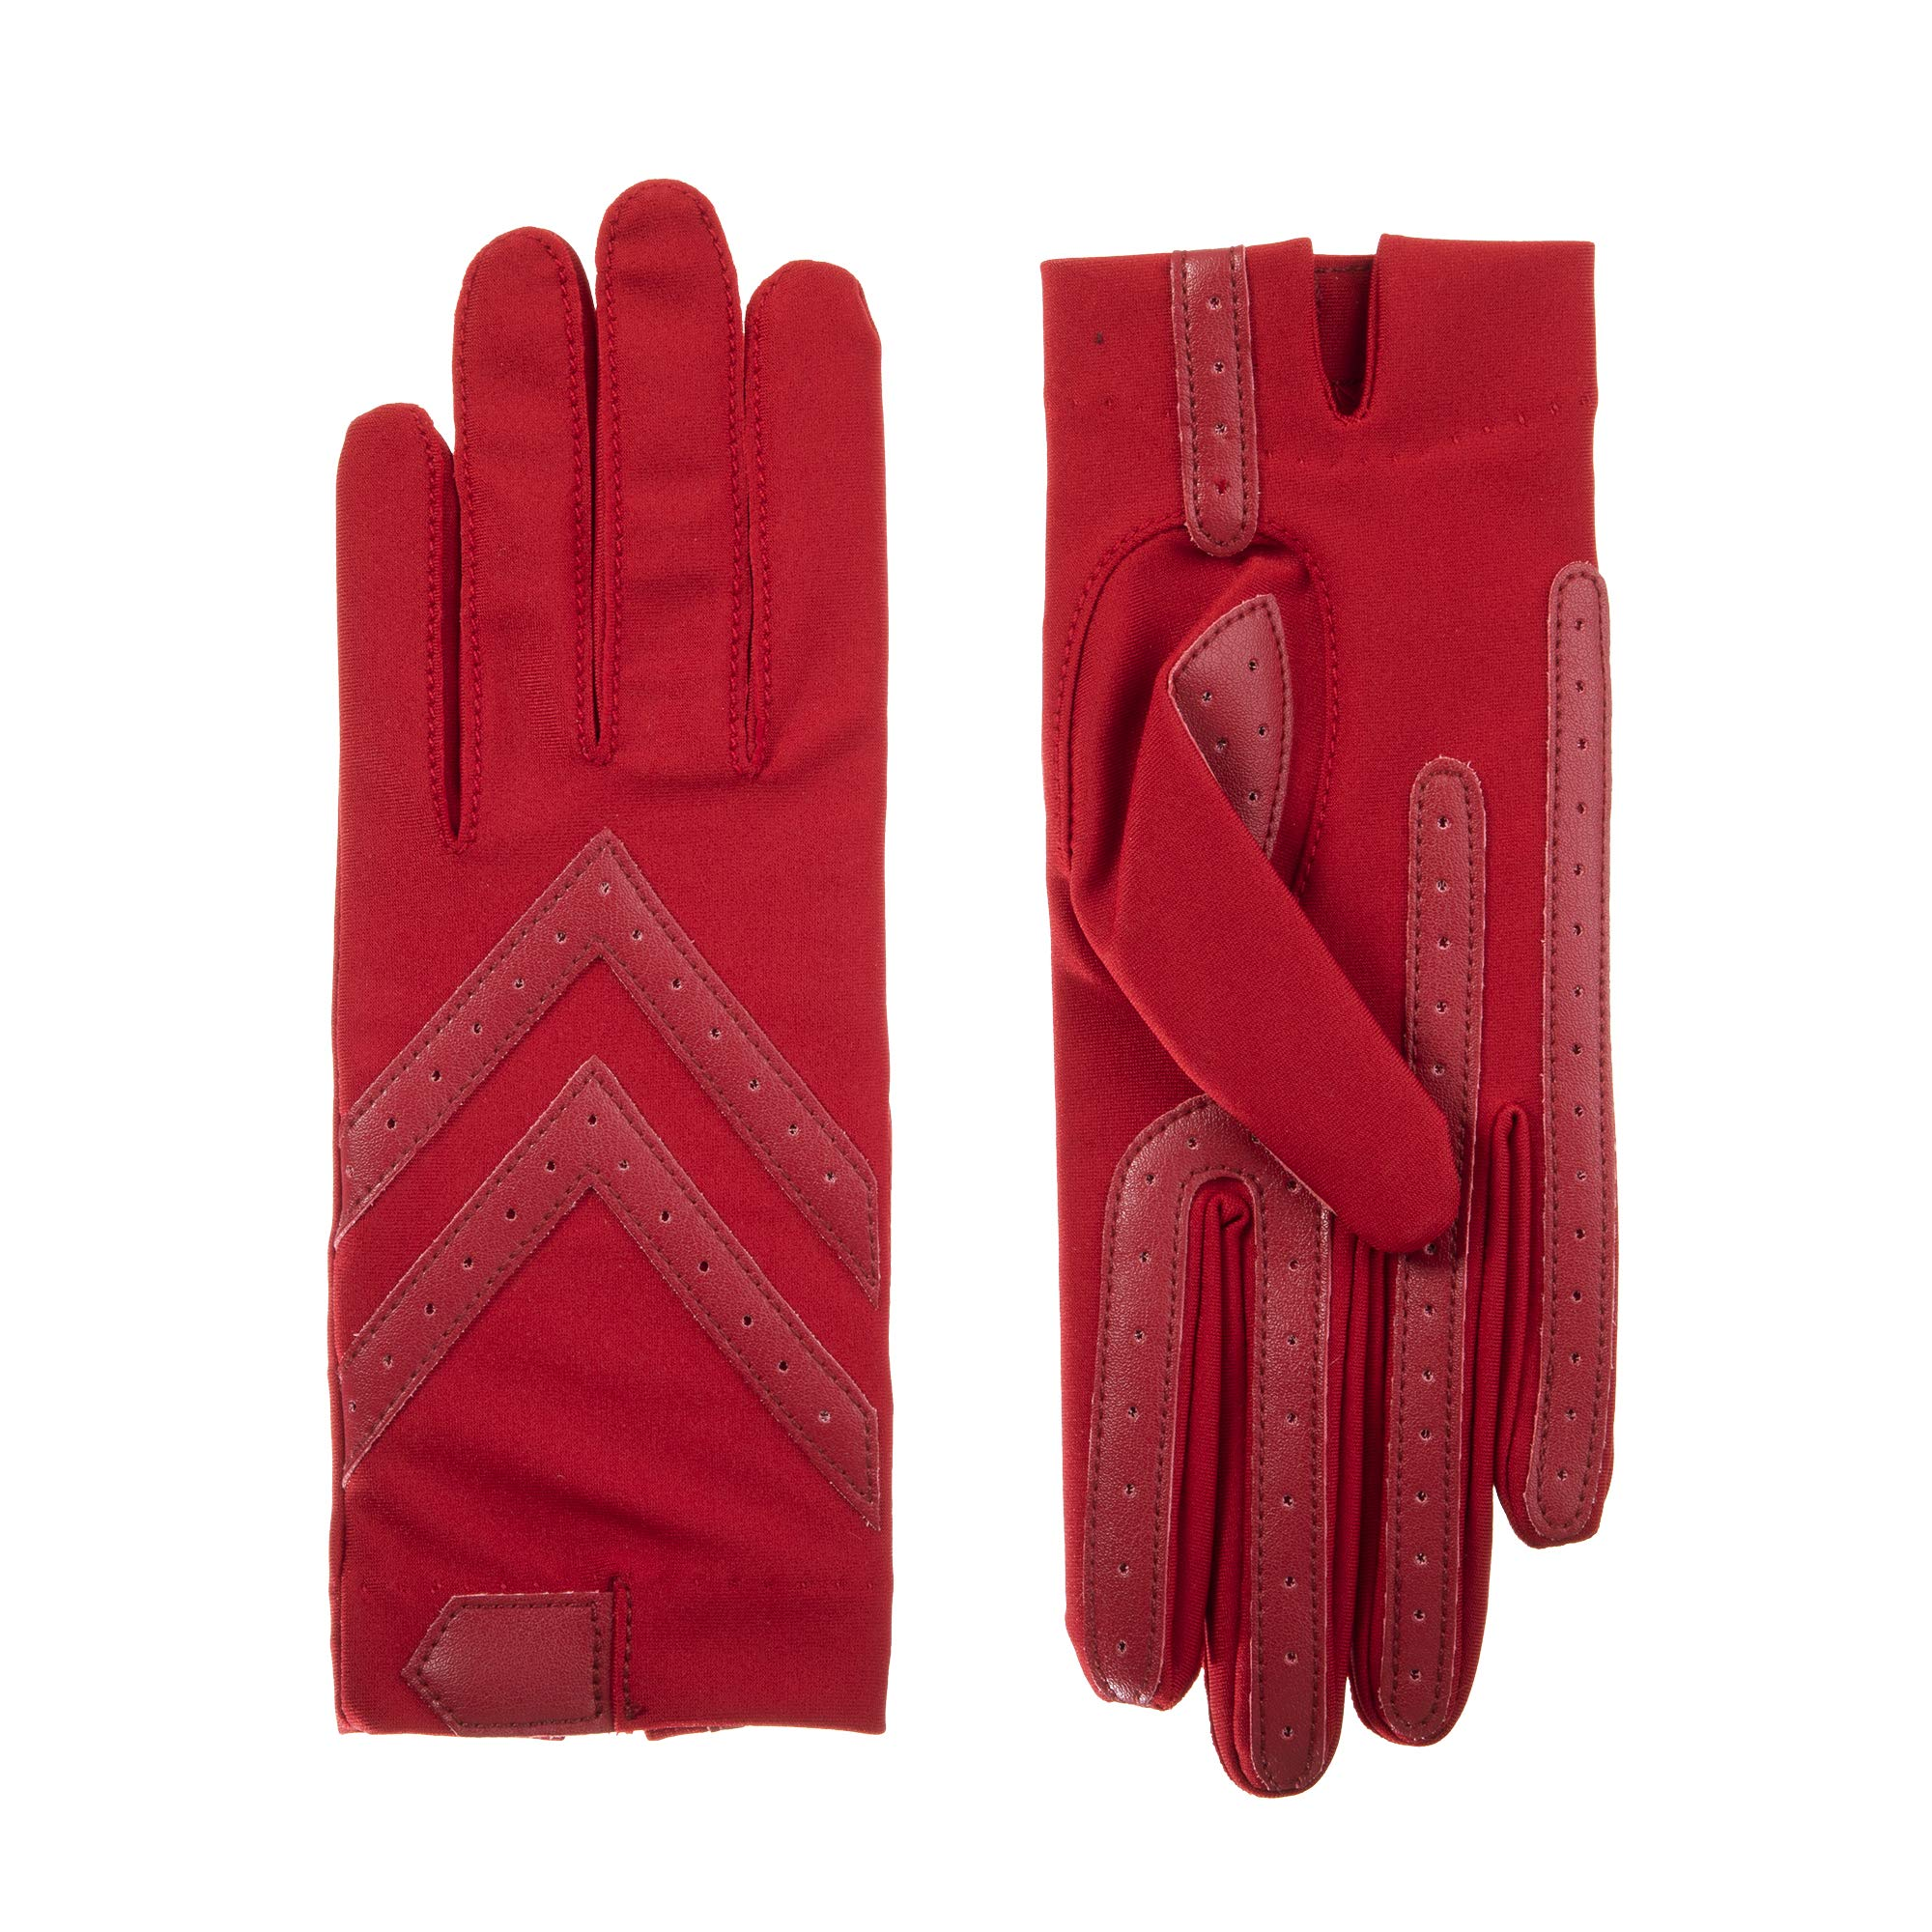 isotoner Women's Spandex Stretch Shortie Cold Weather Gloves with Leather Palms and Chevron Details, smartDRI Red, Small/Medium by ISOTONER